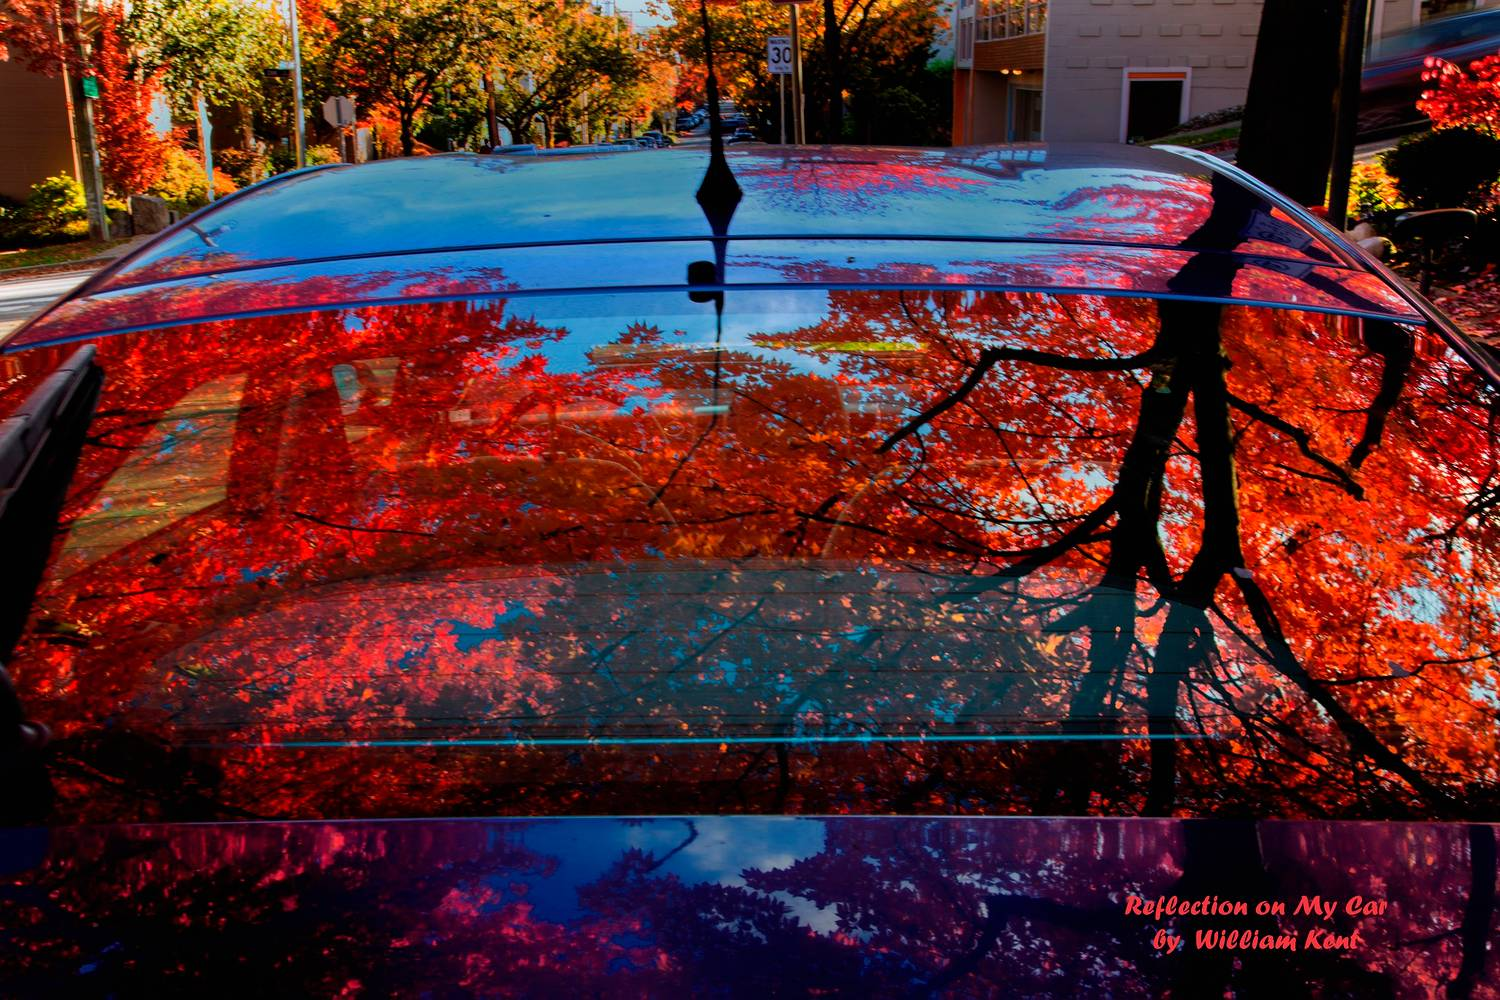 Reflection on My Car by William Kent